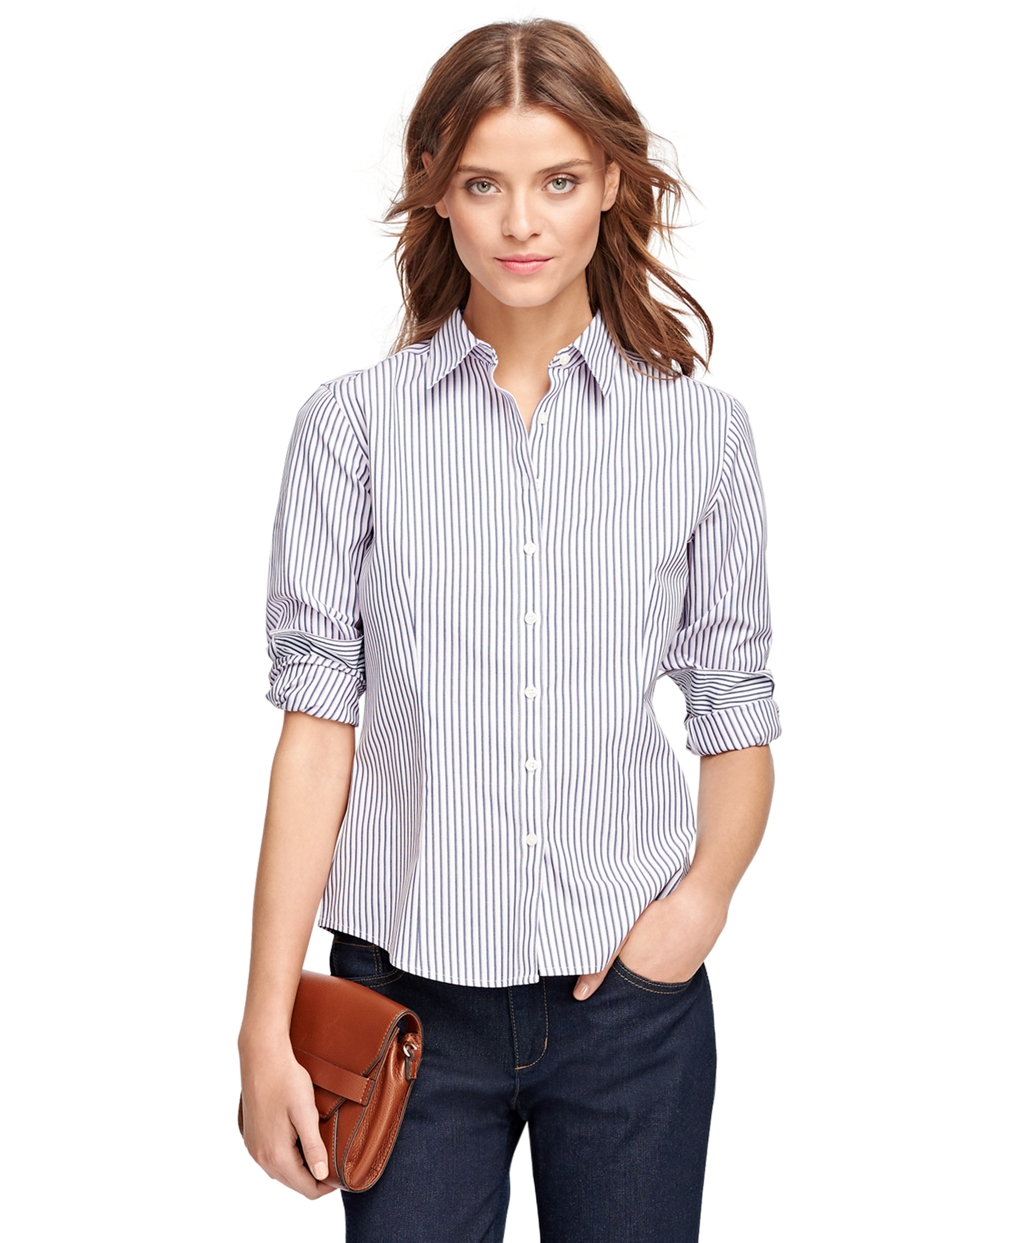 Brooks brothers pink petite non iron fitted stripe dress for Brooks brothers non iron shirts review